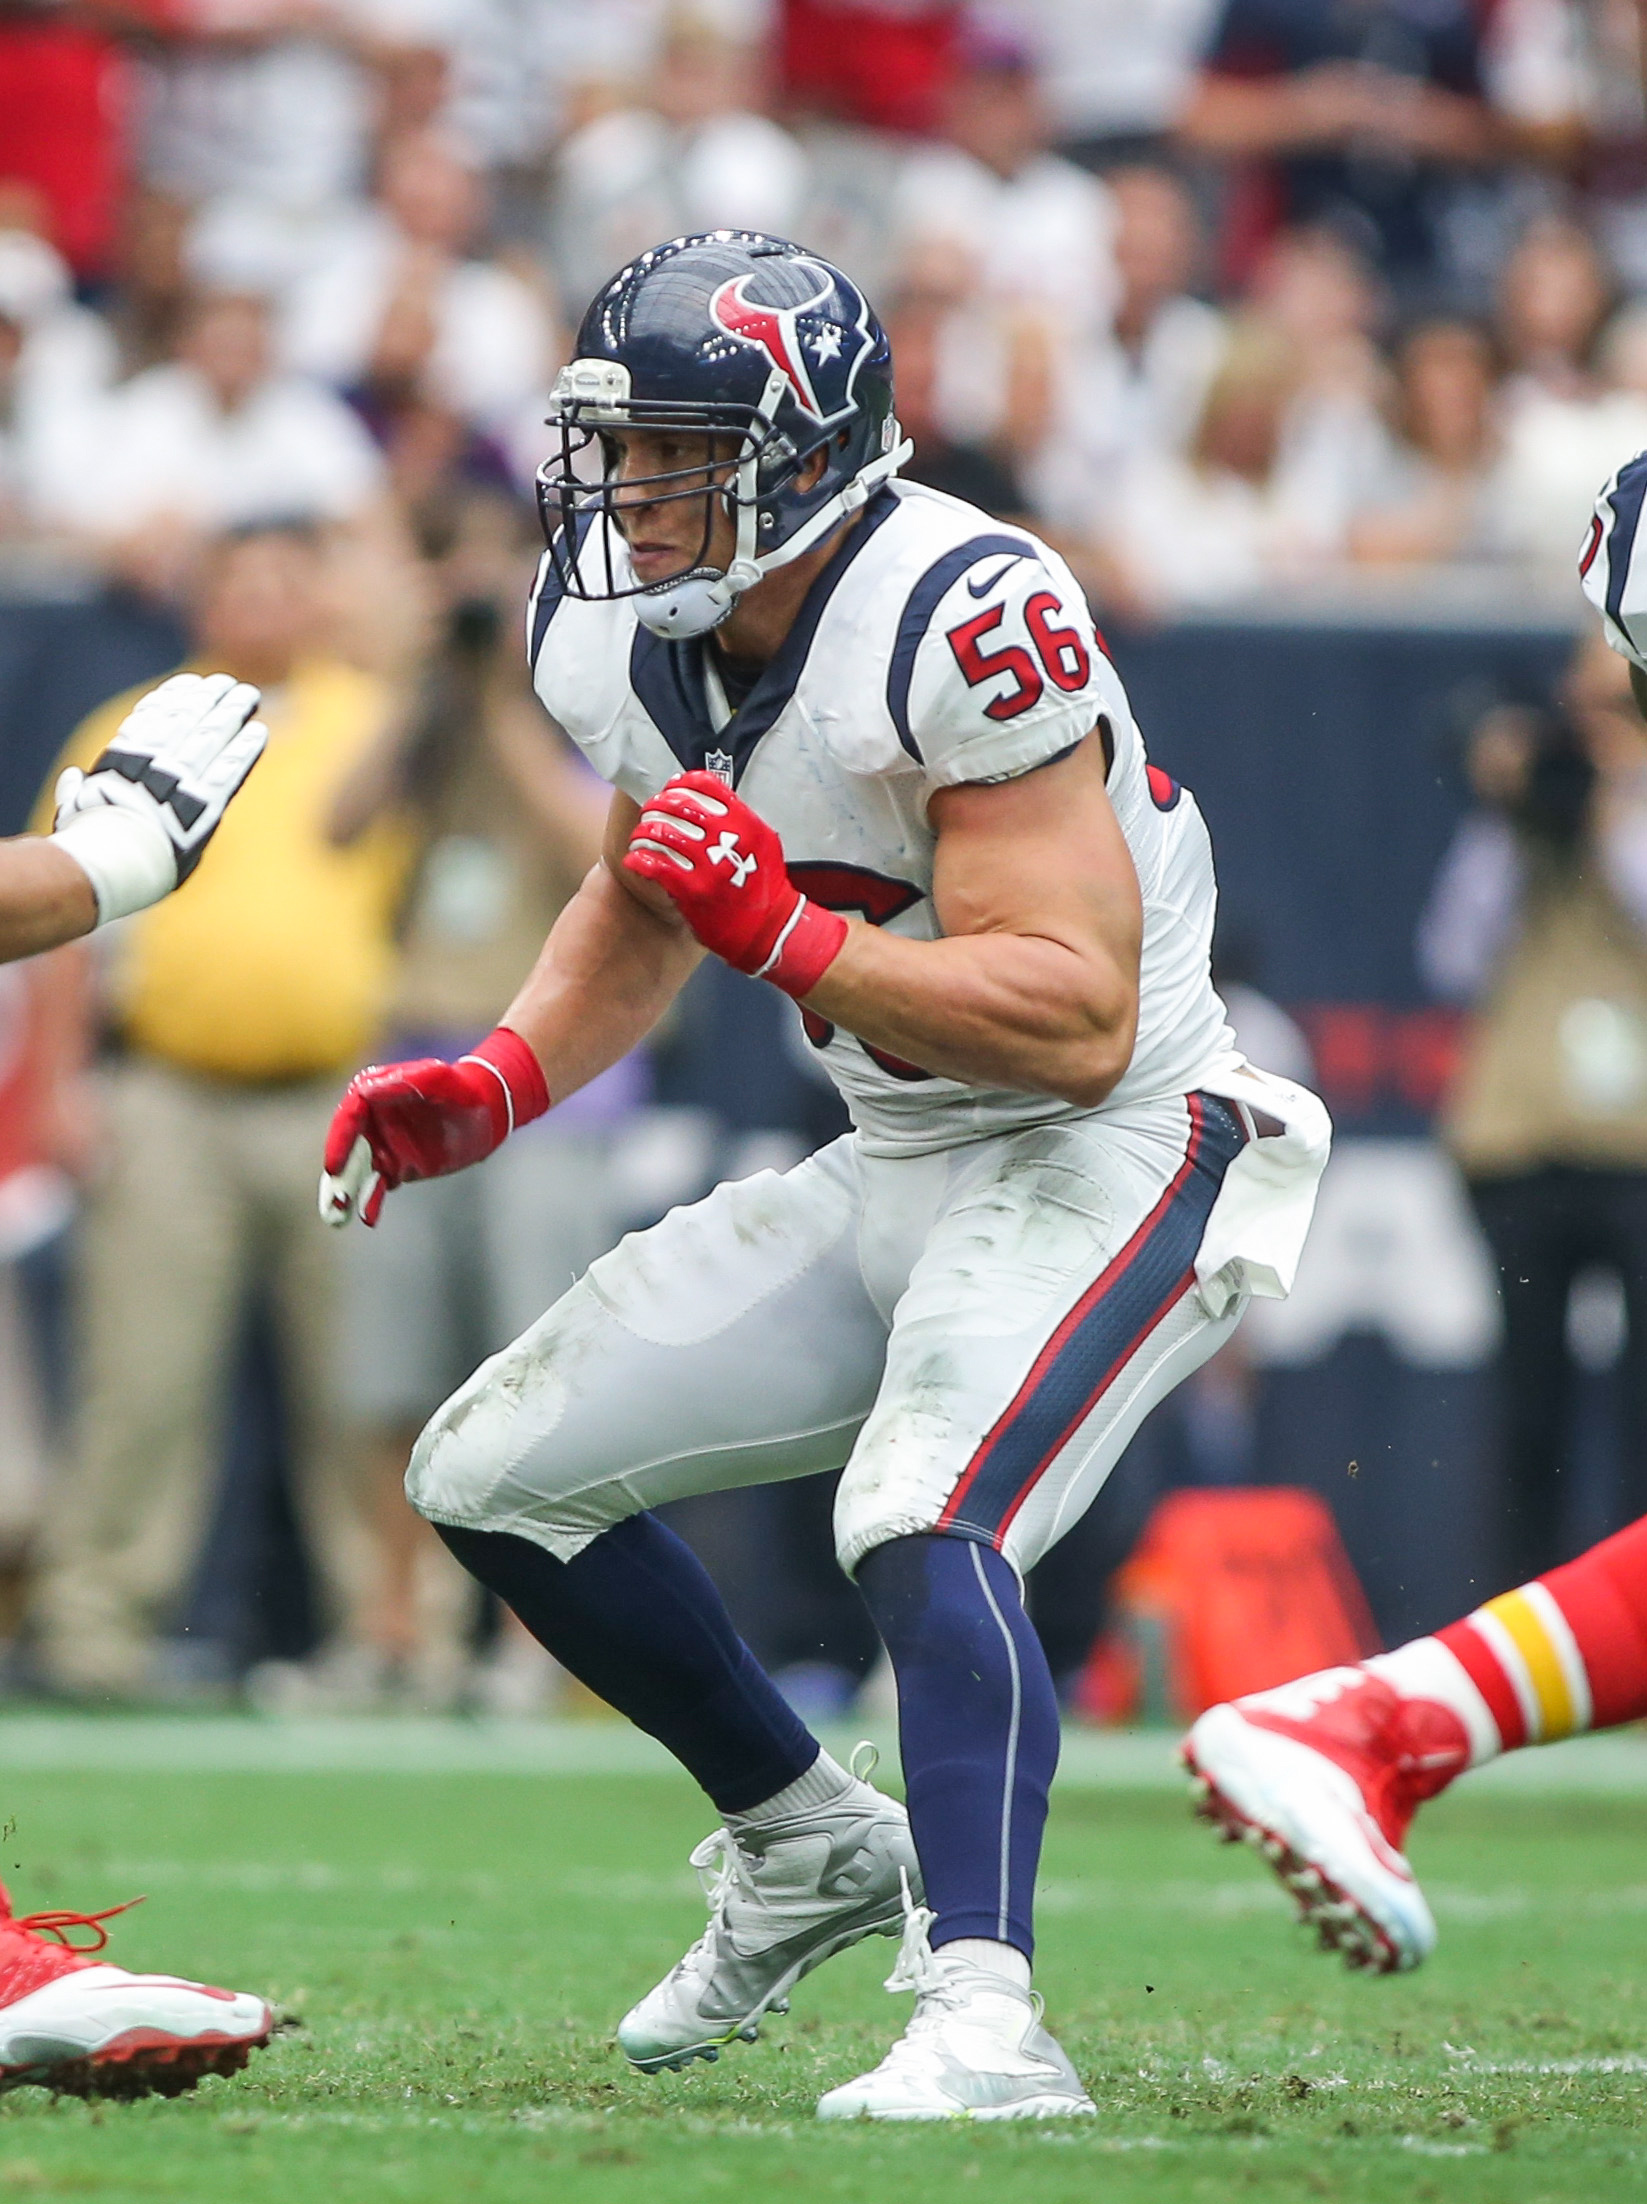 Jason La Canfora says Cushing could be had by another NFL team in trade.